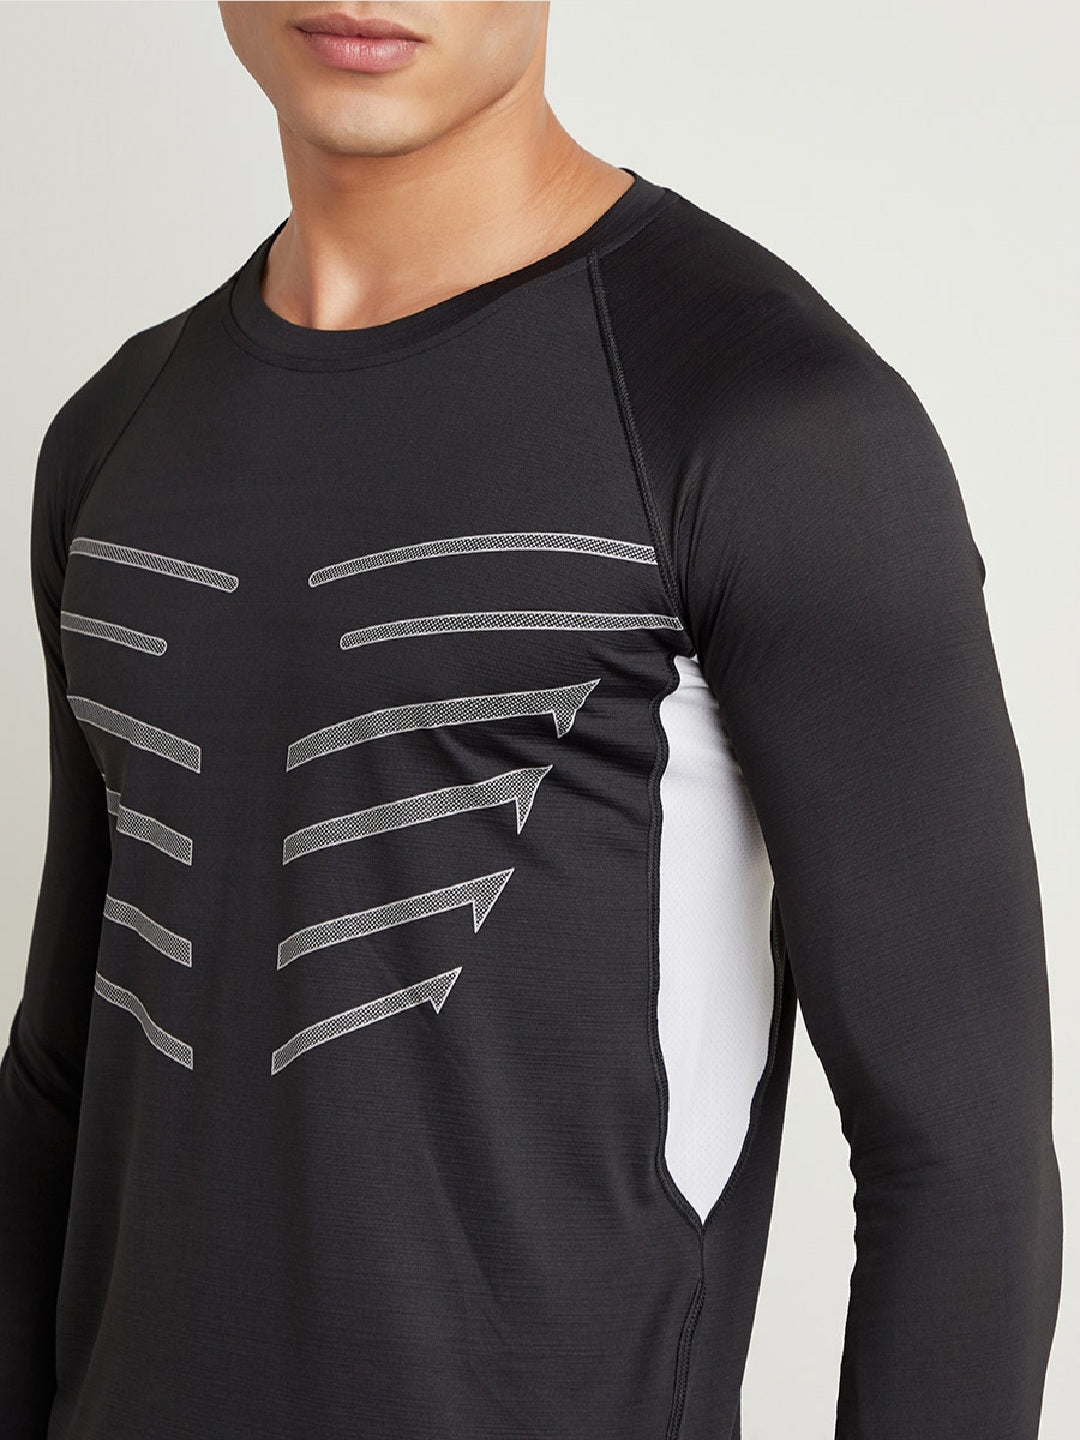 Fitkin Men Black & Grey Printed Round Neck Training T-shirt